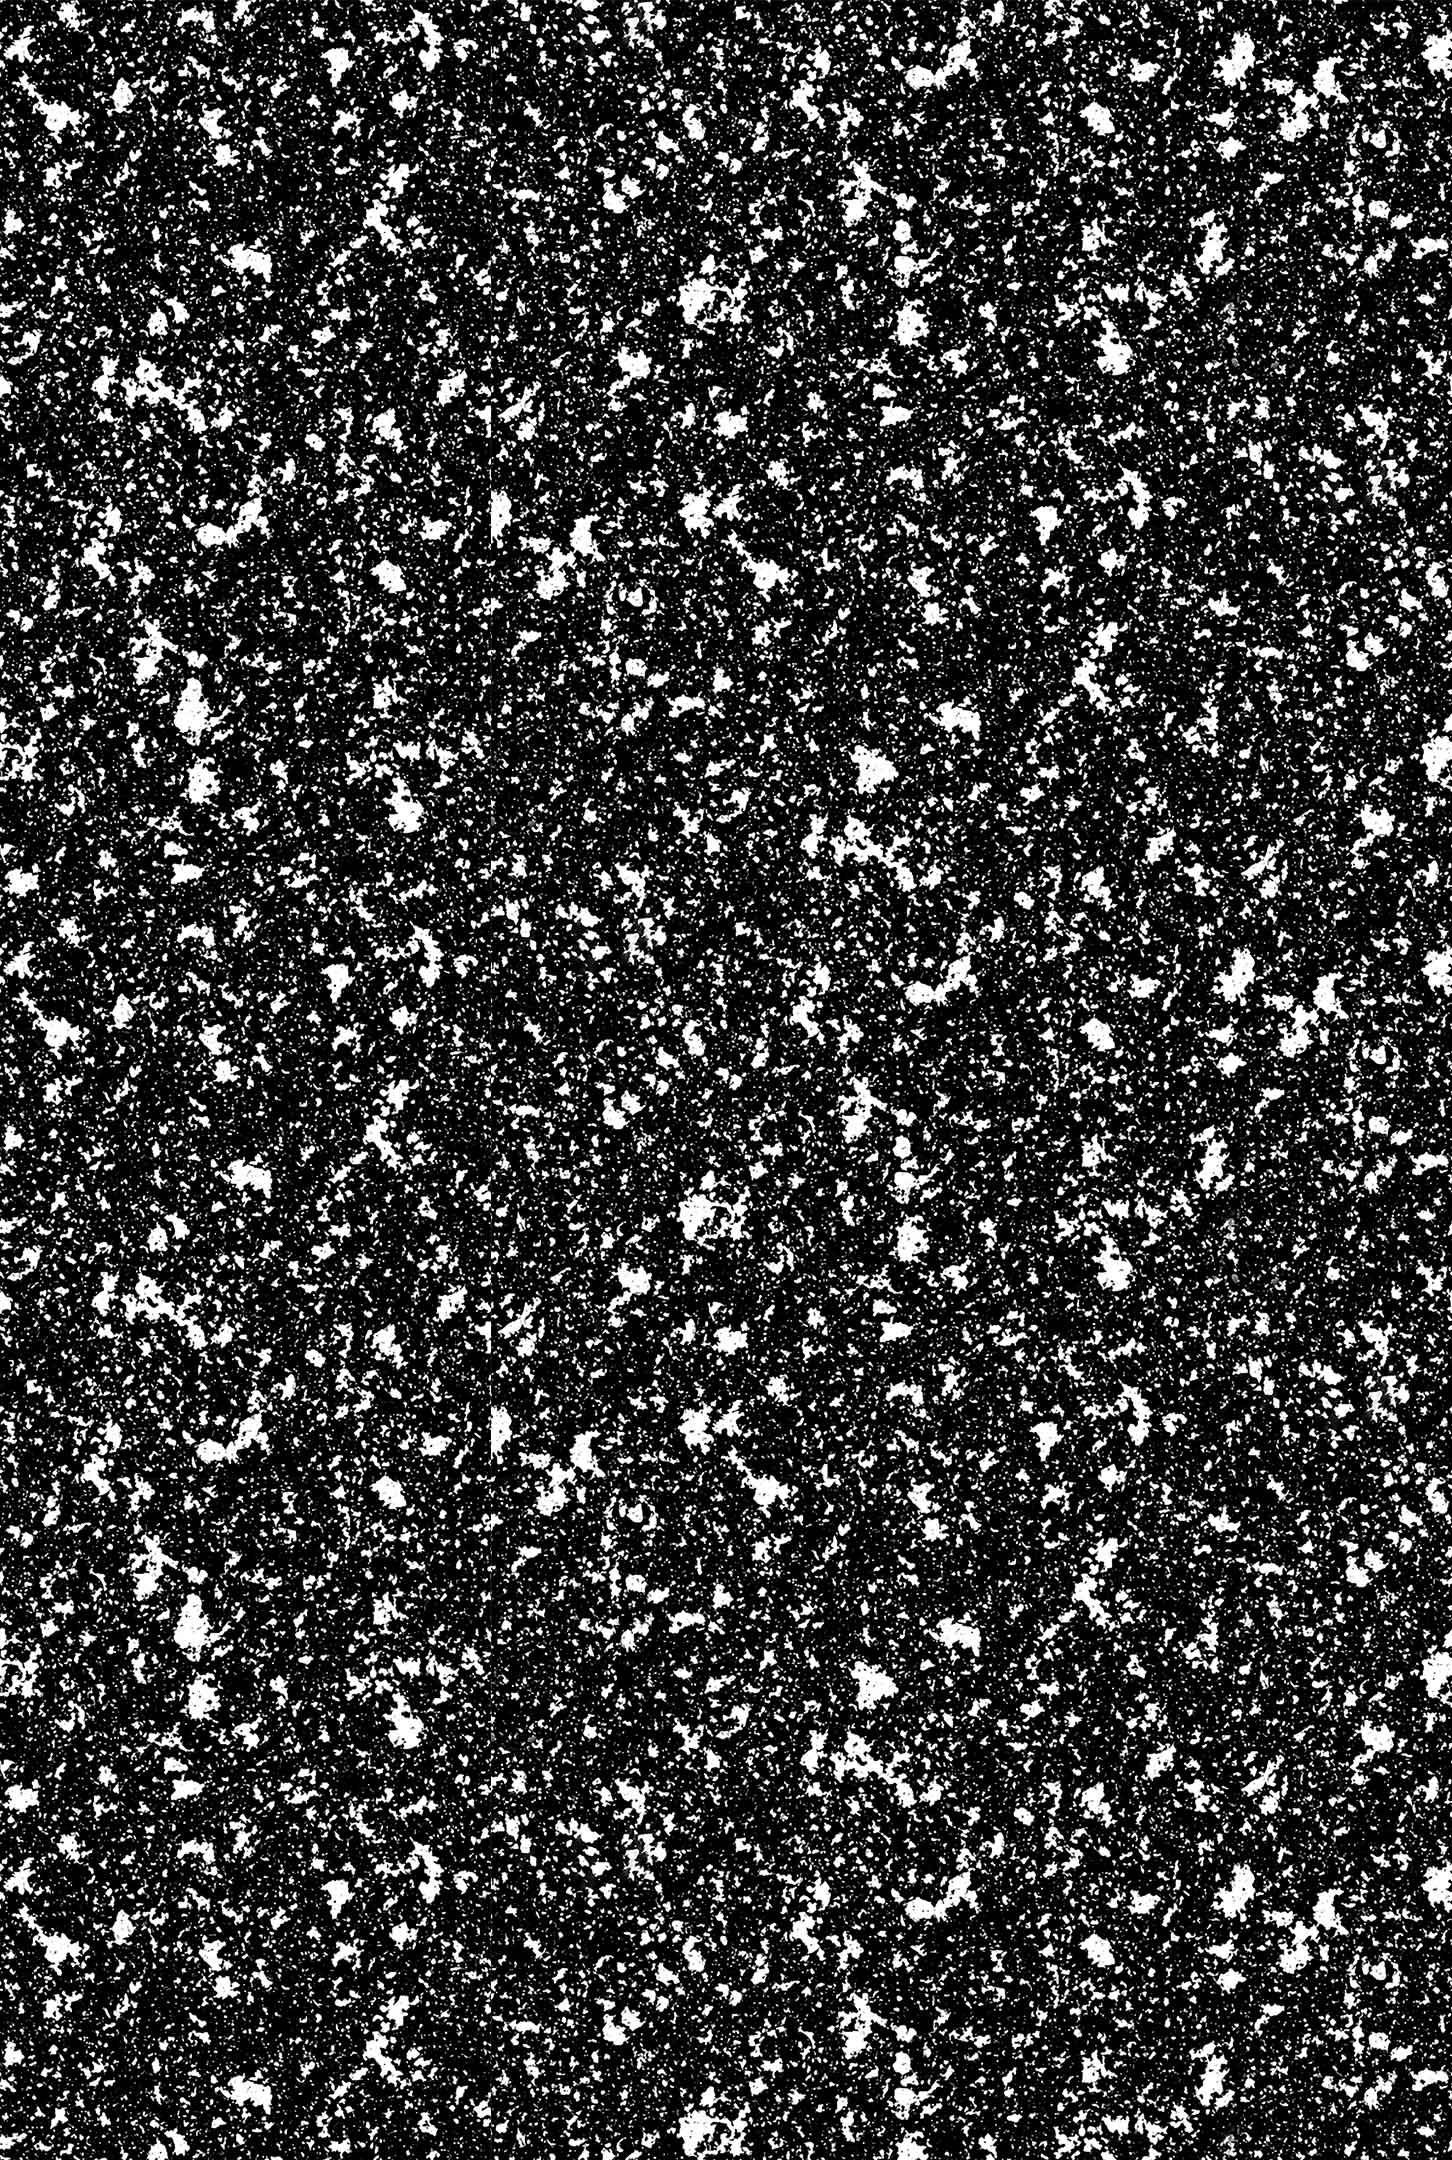 Textures Surfacedesign Allthatglitters Black Sparkle Background Black Wallpaper Black Glitter Wallpapers